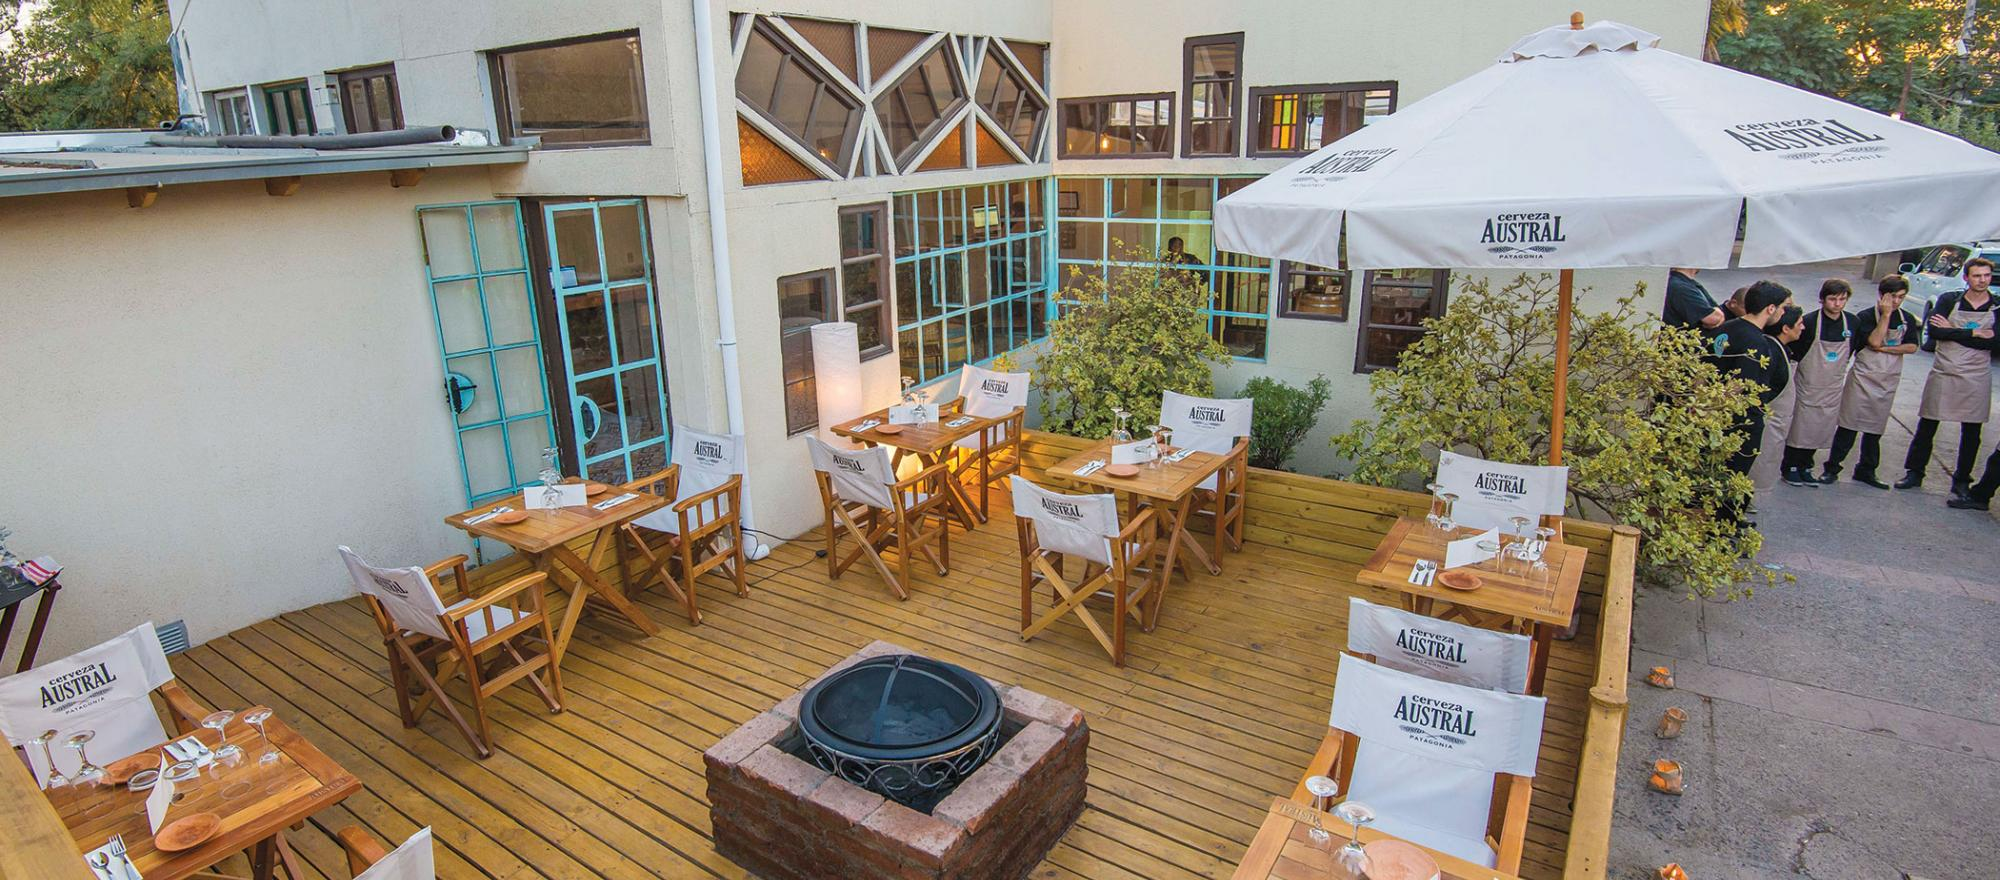 You can dine indoors or out at Santiago, Chile's D.O. Restorán, whose menu reports the source of every fish, piece of meat and vegetable. (PHOTO: Diego Varas)